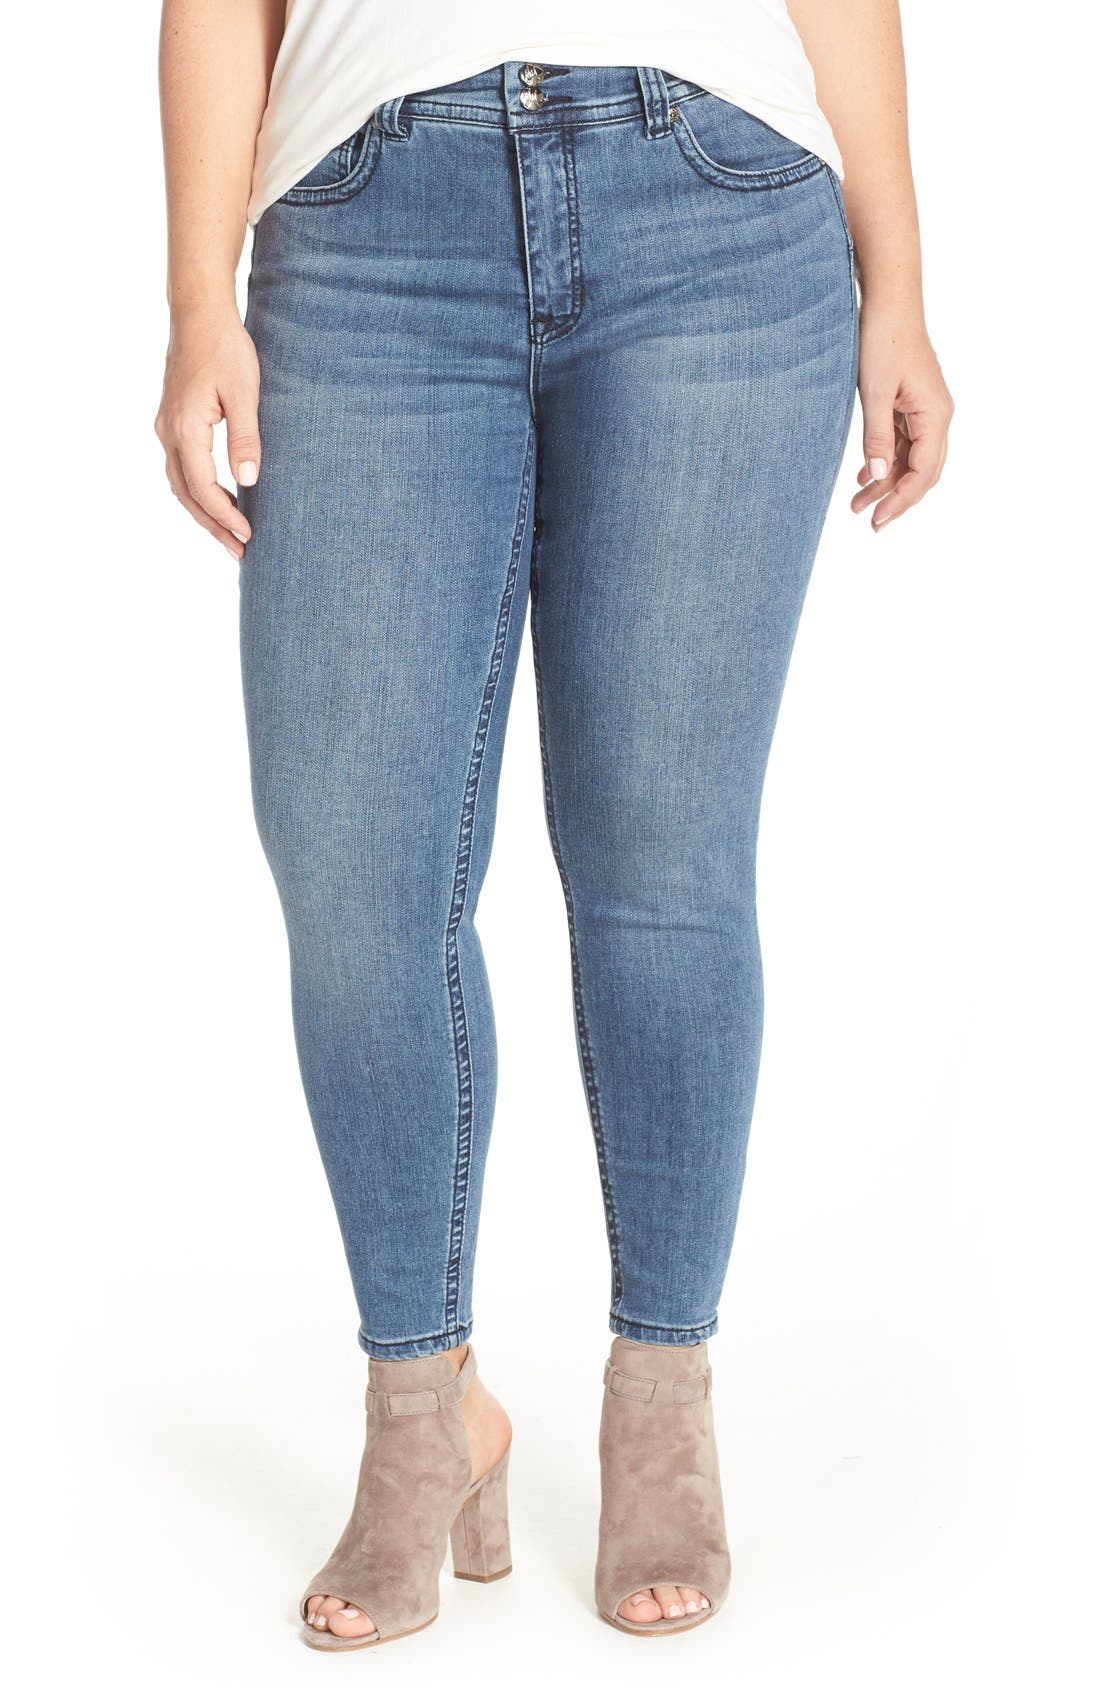 Melissa McCarthy Seven7 High Waist Stretch Pencil Jeans (Hampton) (Plus Size)